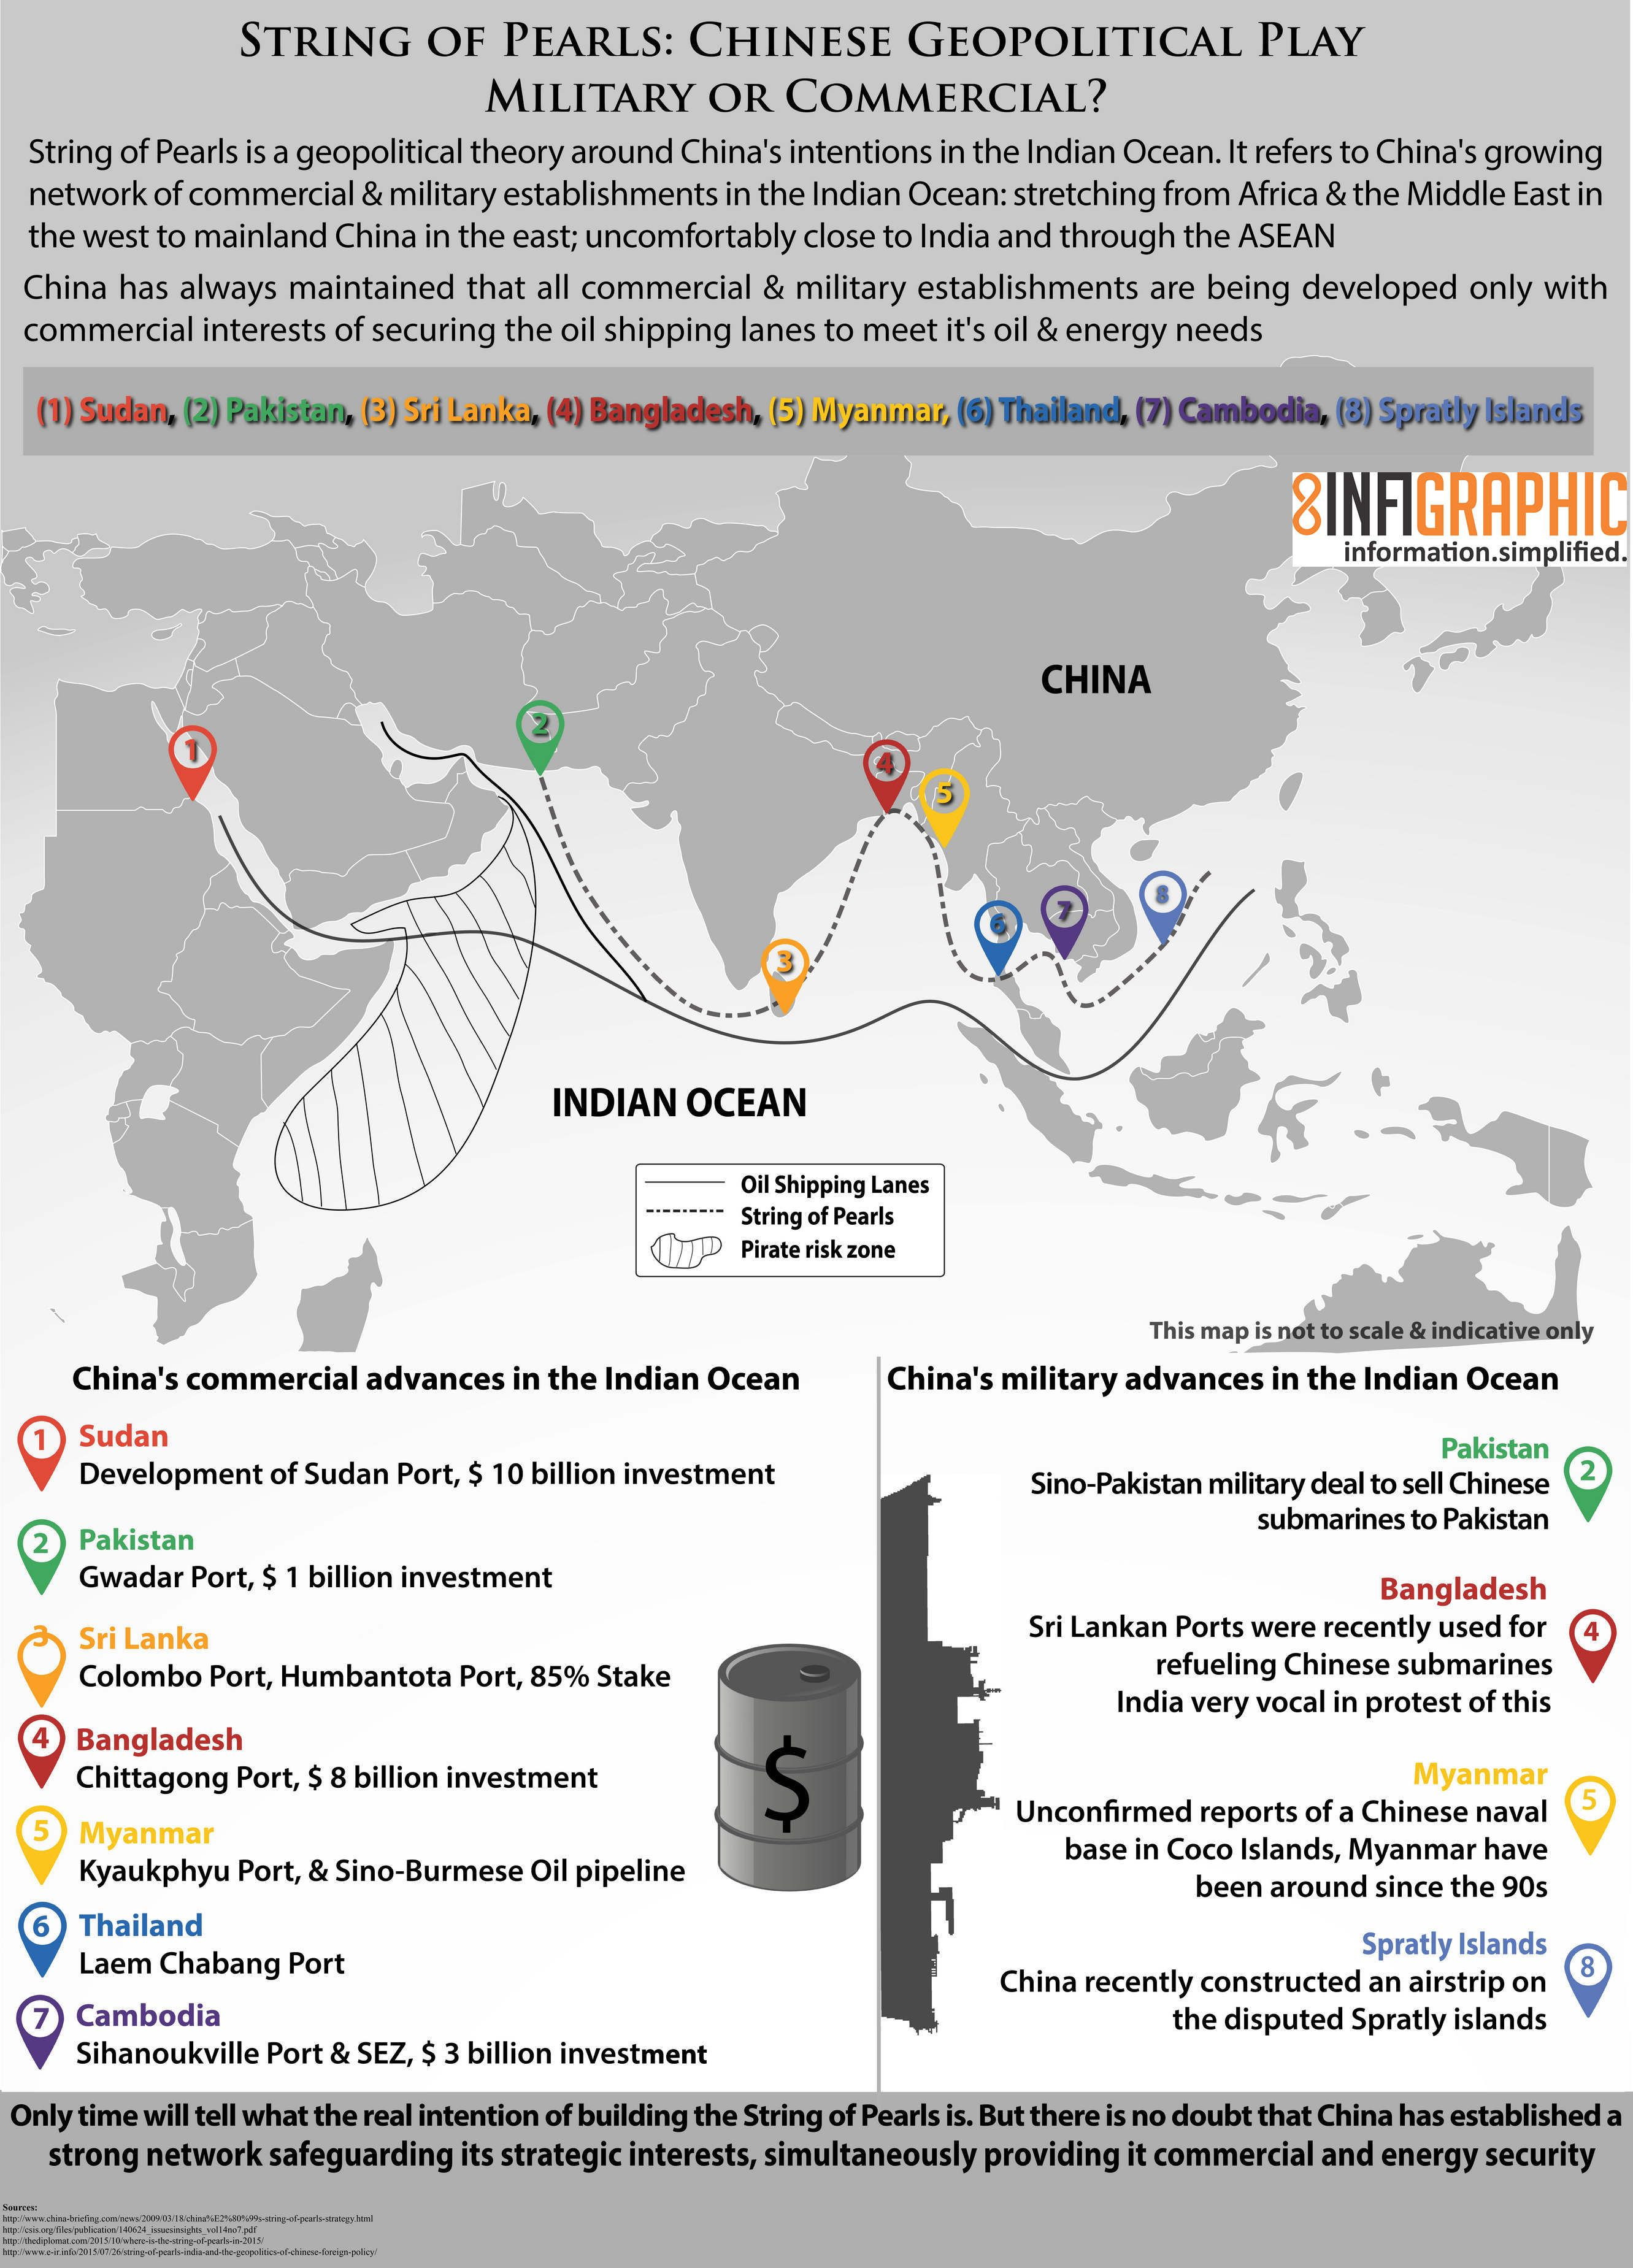 This infographic briefly captures China's geopolitical